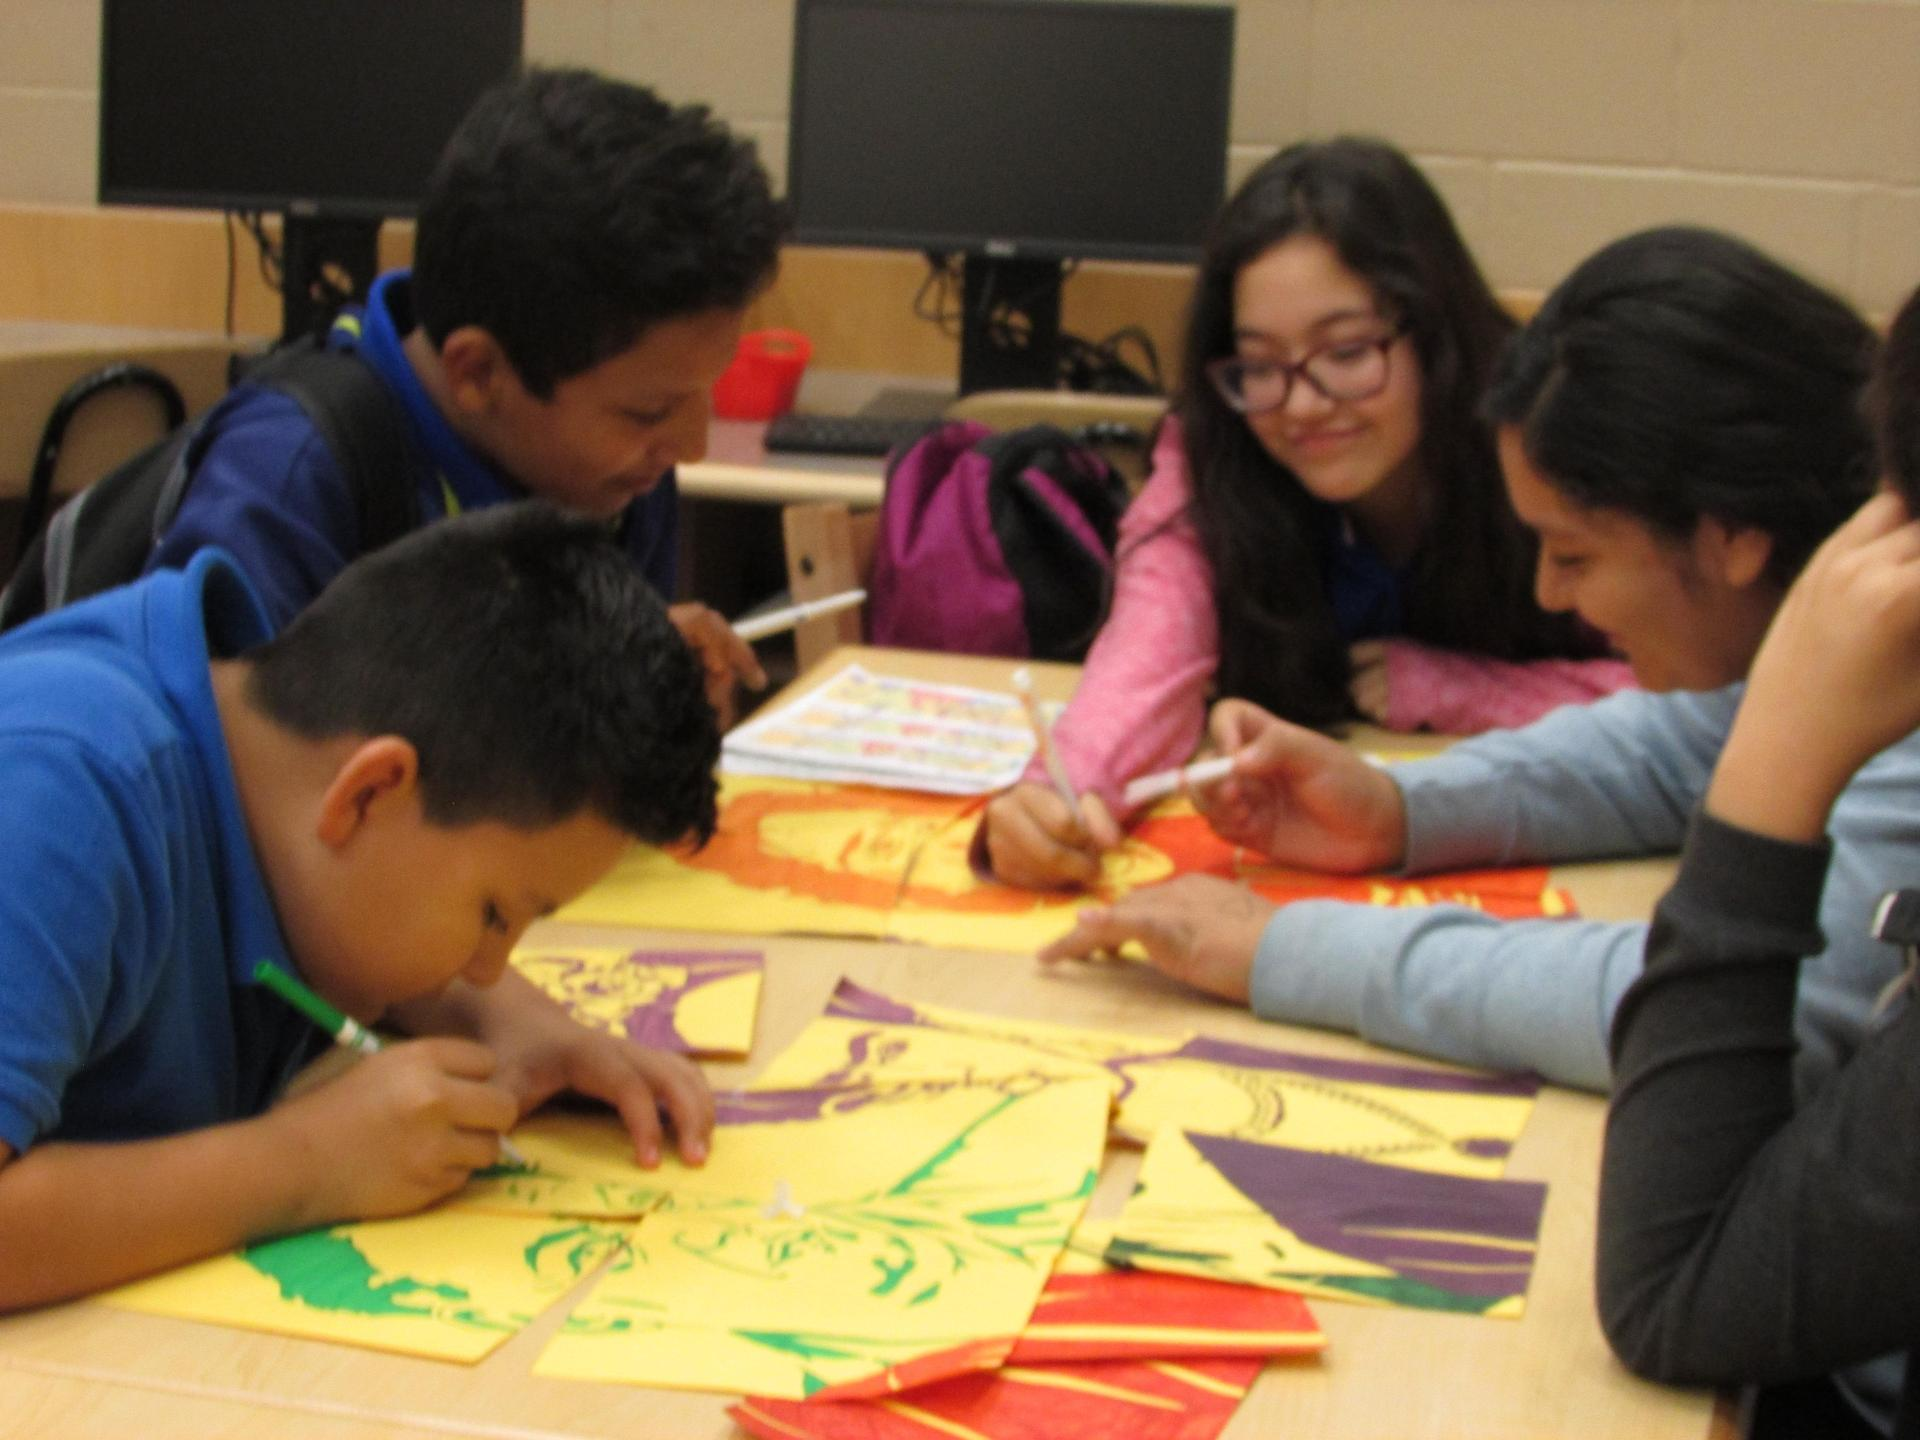 Students working on Hispanic Heritage Collaboration poster.